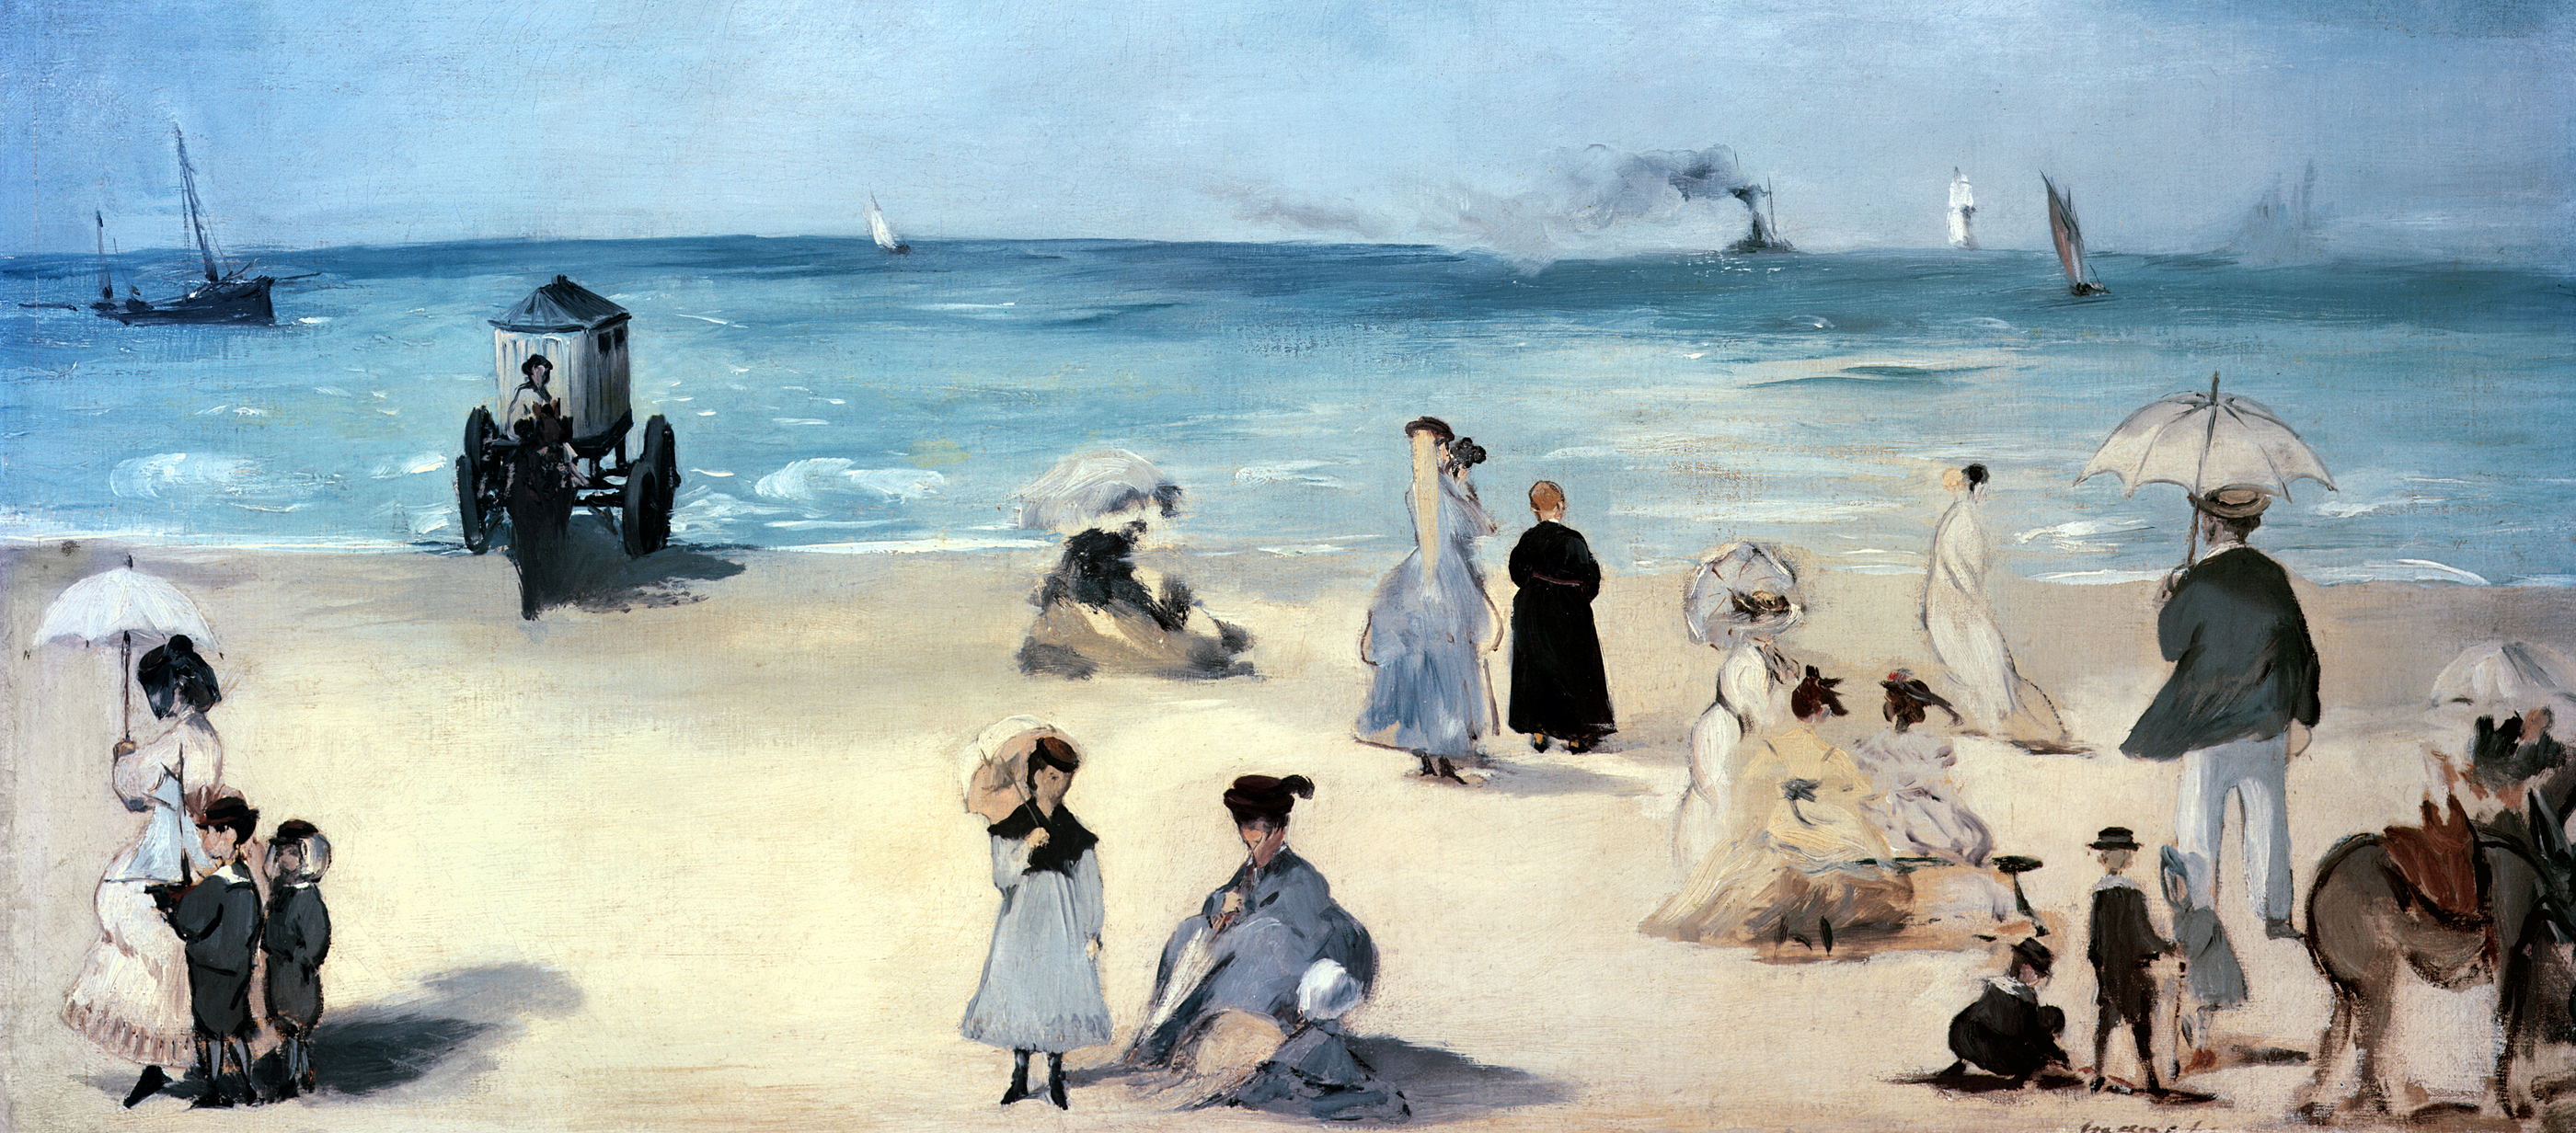 On the Beach, Boulogne-sur-Mer, by Édouard Manet, c. 1869.